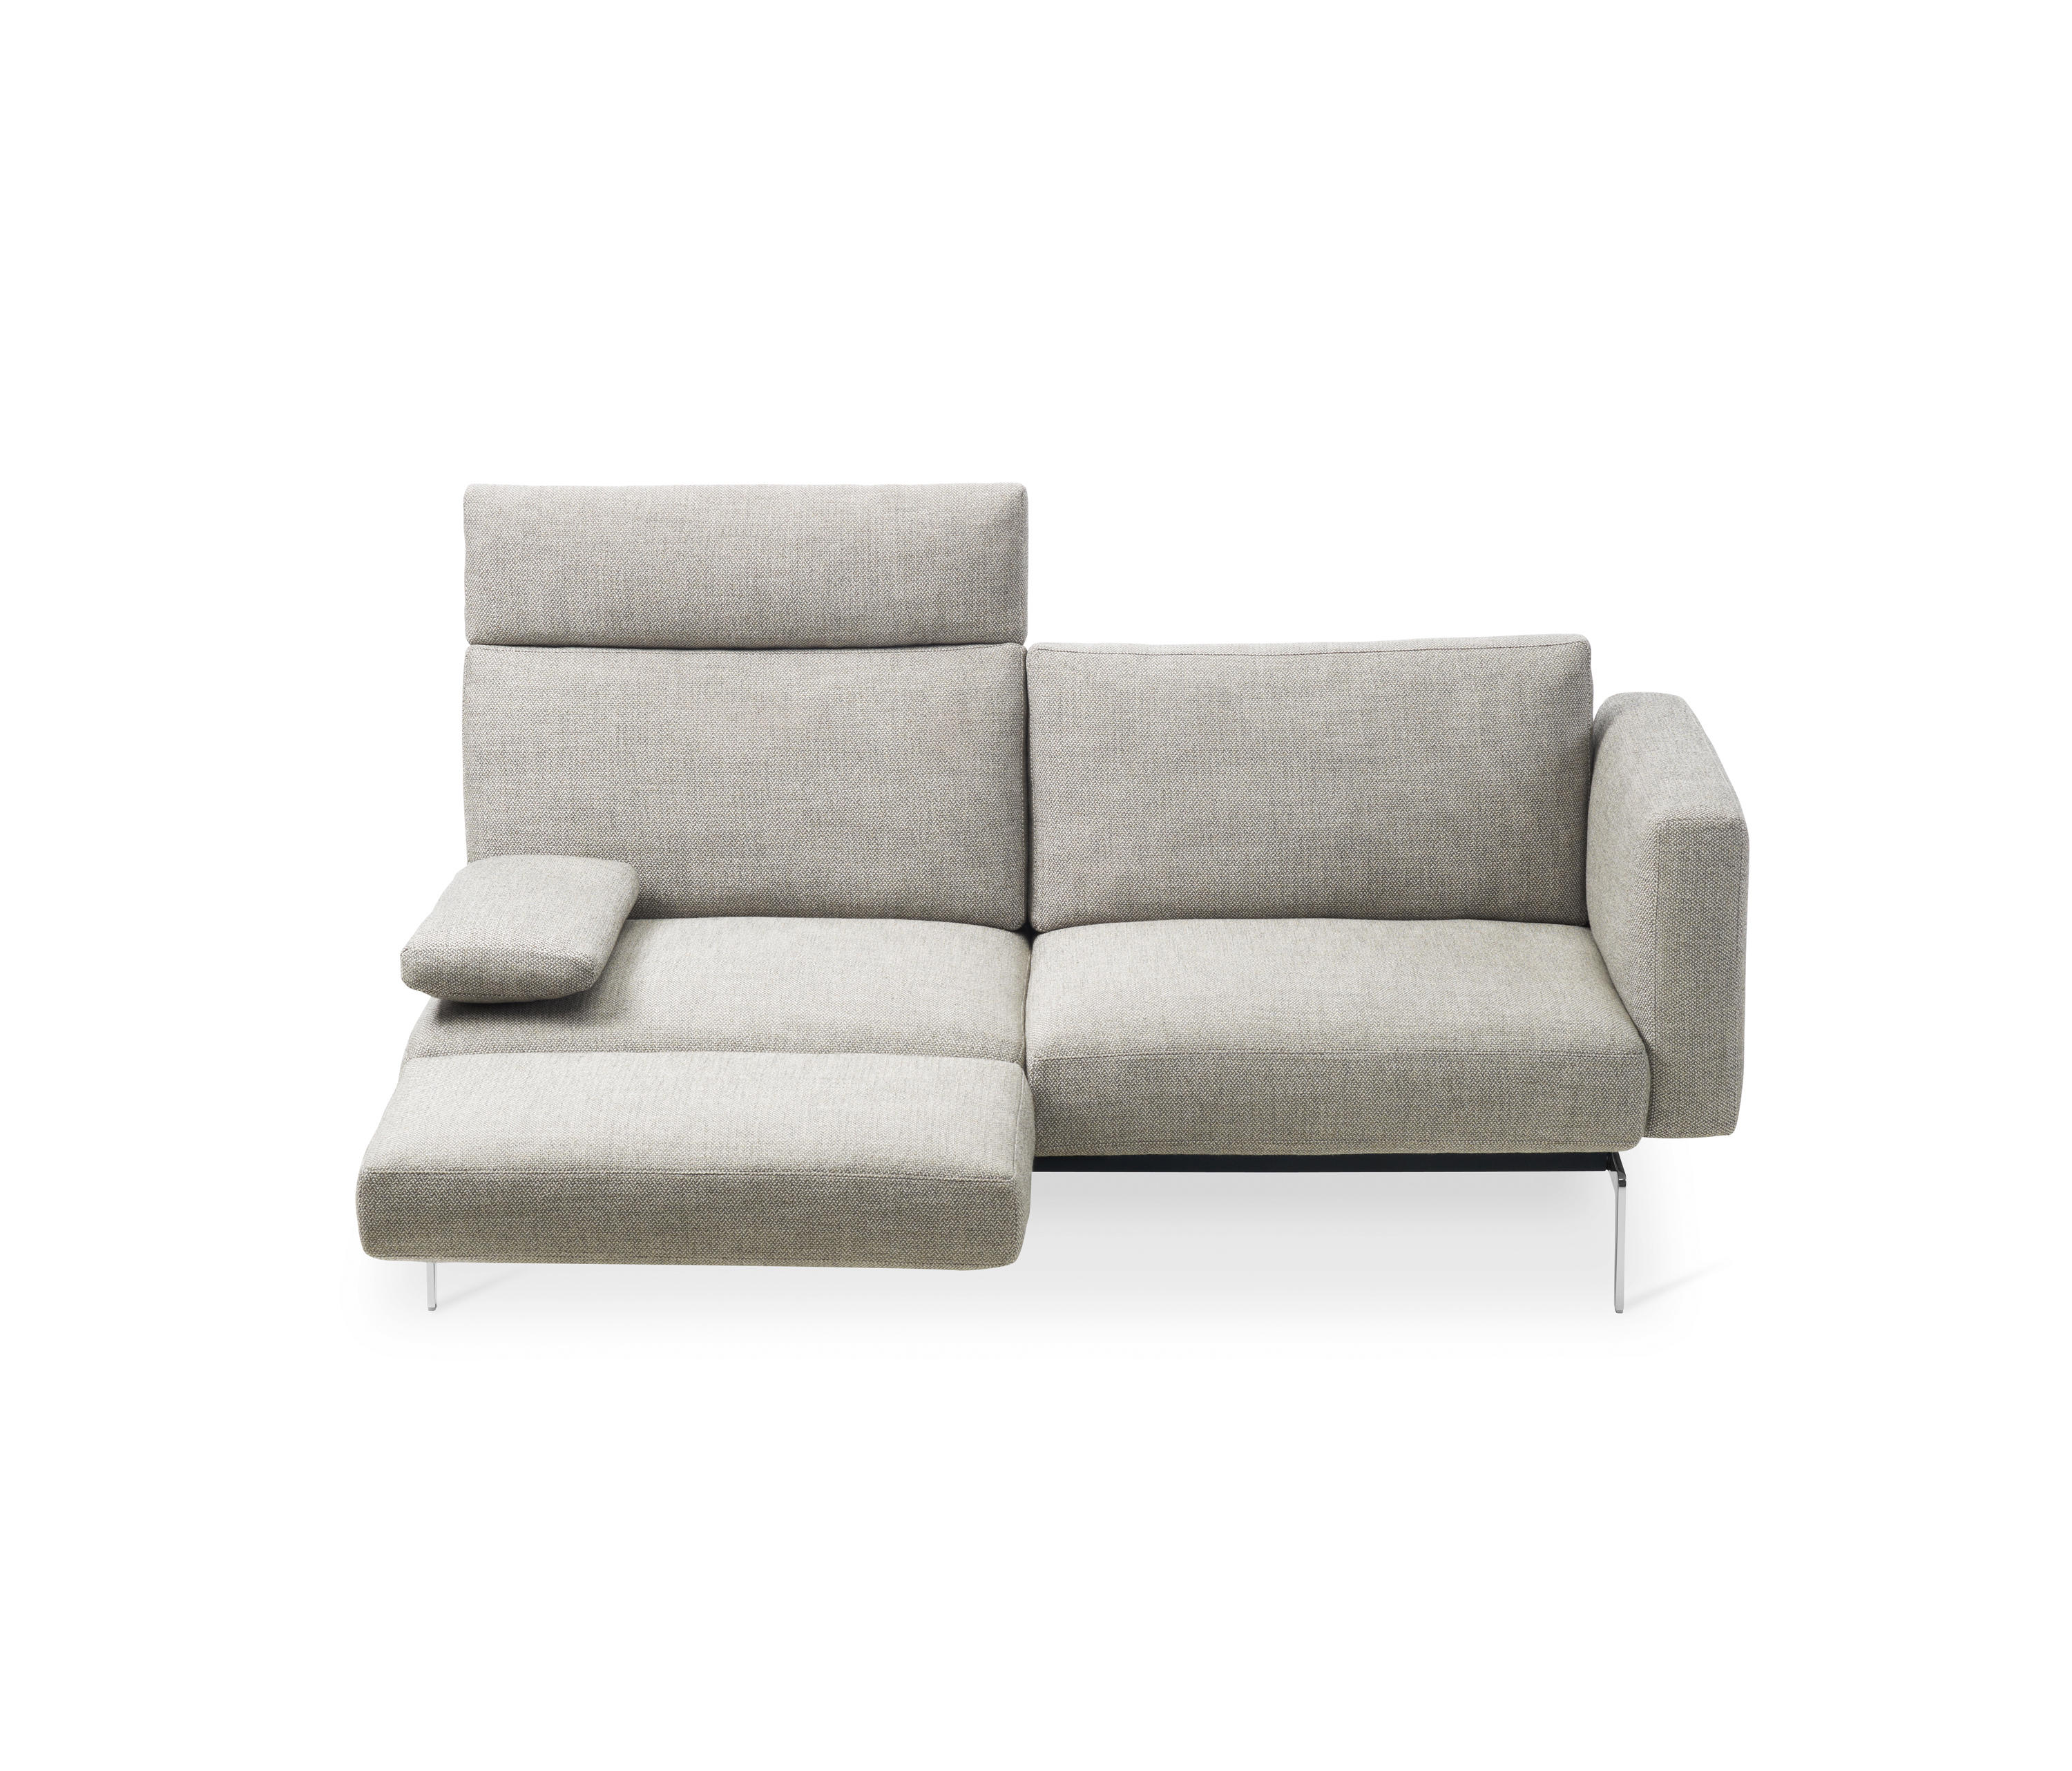 SMART 1424 - Reclining sofas from Intertime | Architonic